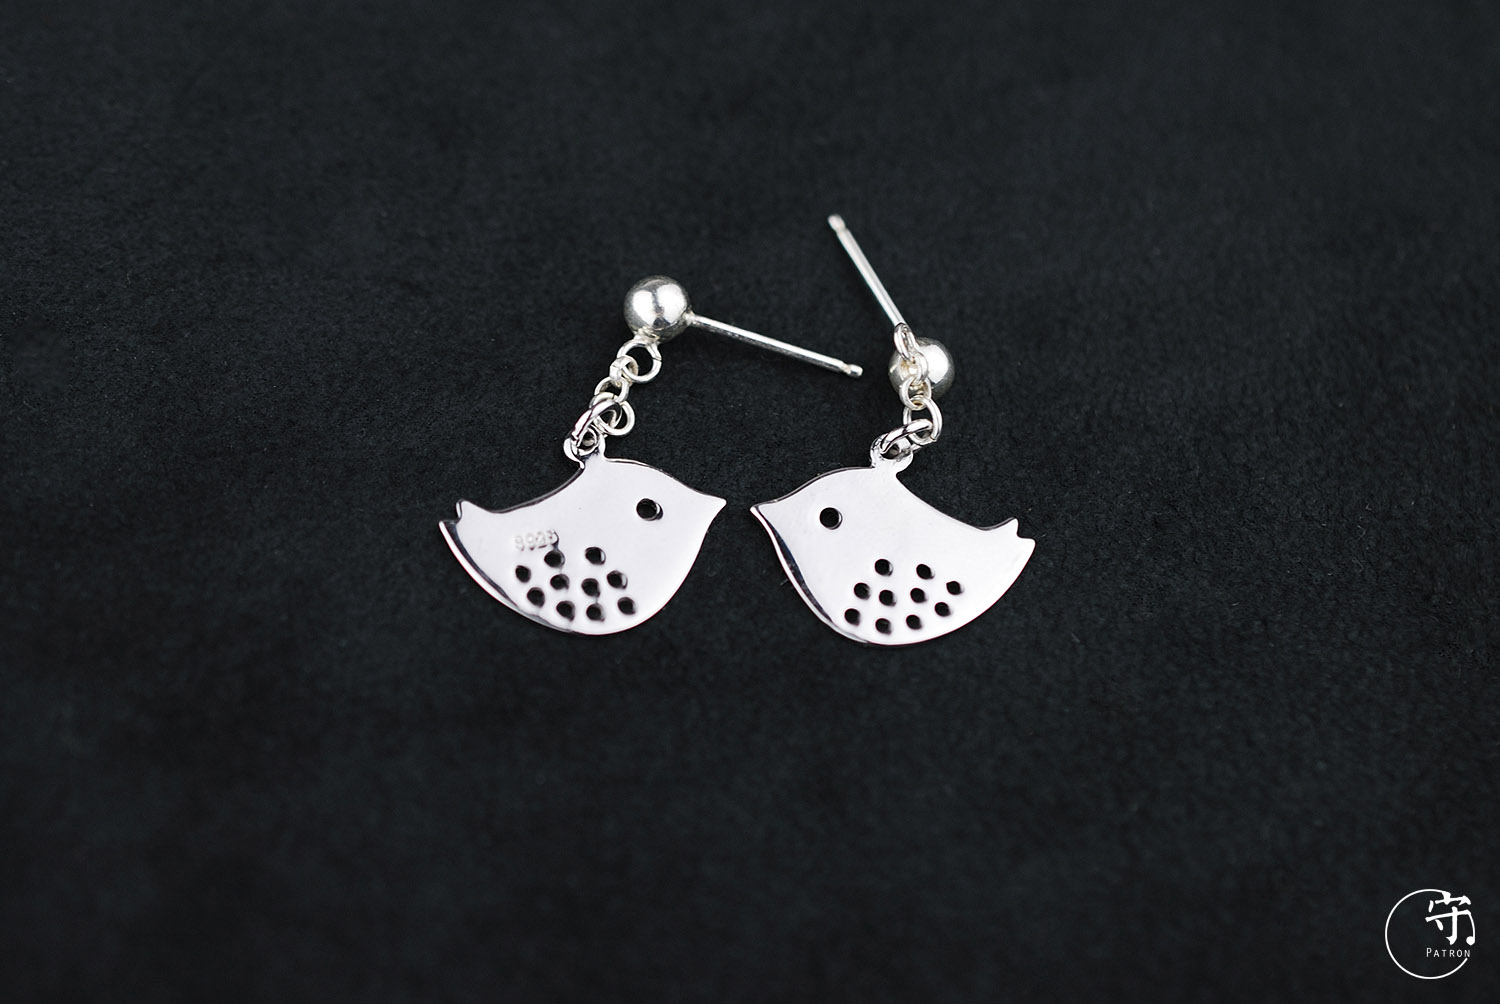 Handmade 925 Sterling Silver Pair of Lovebirds Women Earrings - Wishbop.com